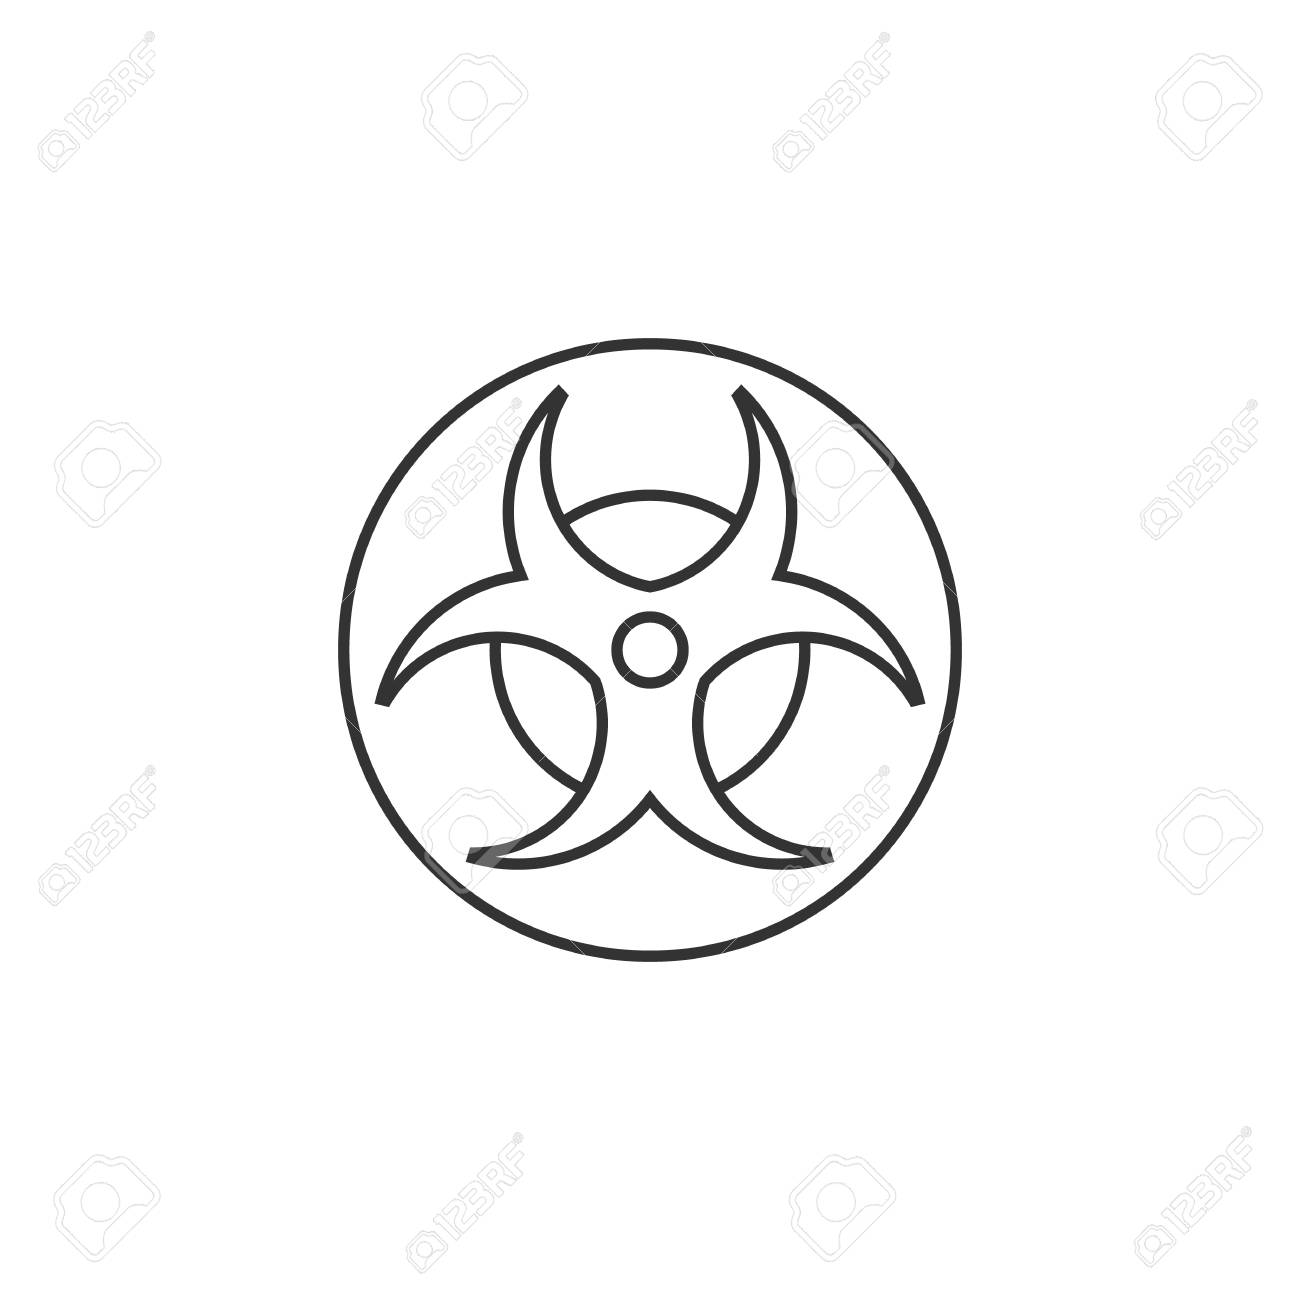 Biohazard symbol icon in thin outline style science technology biohazard symbol icon in thin outline style science technology biology environment hazard danger stock vector buycottarizona Image collections